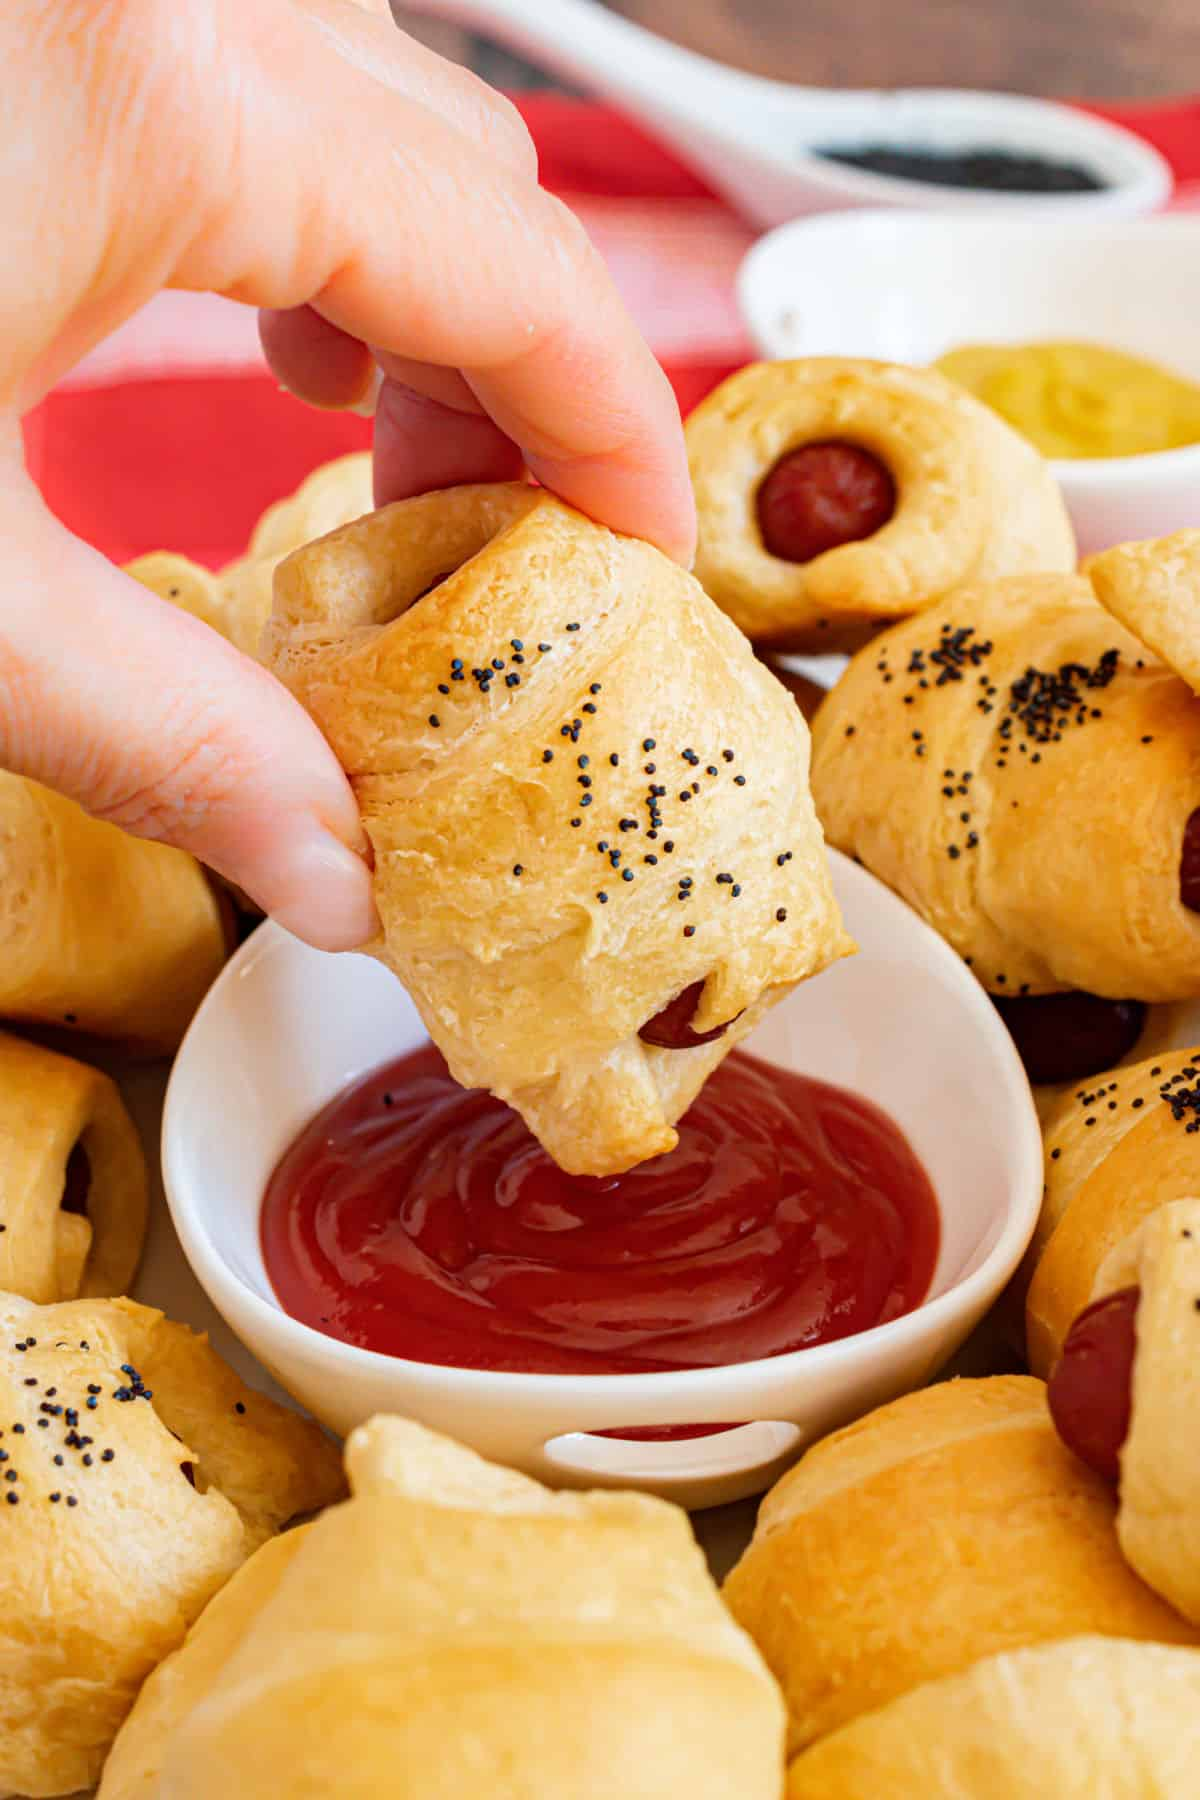 Crescent roll dog being dipped in ketchup.